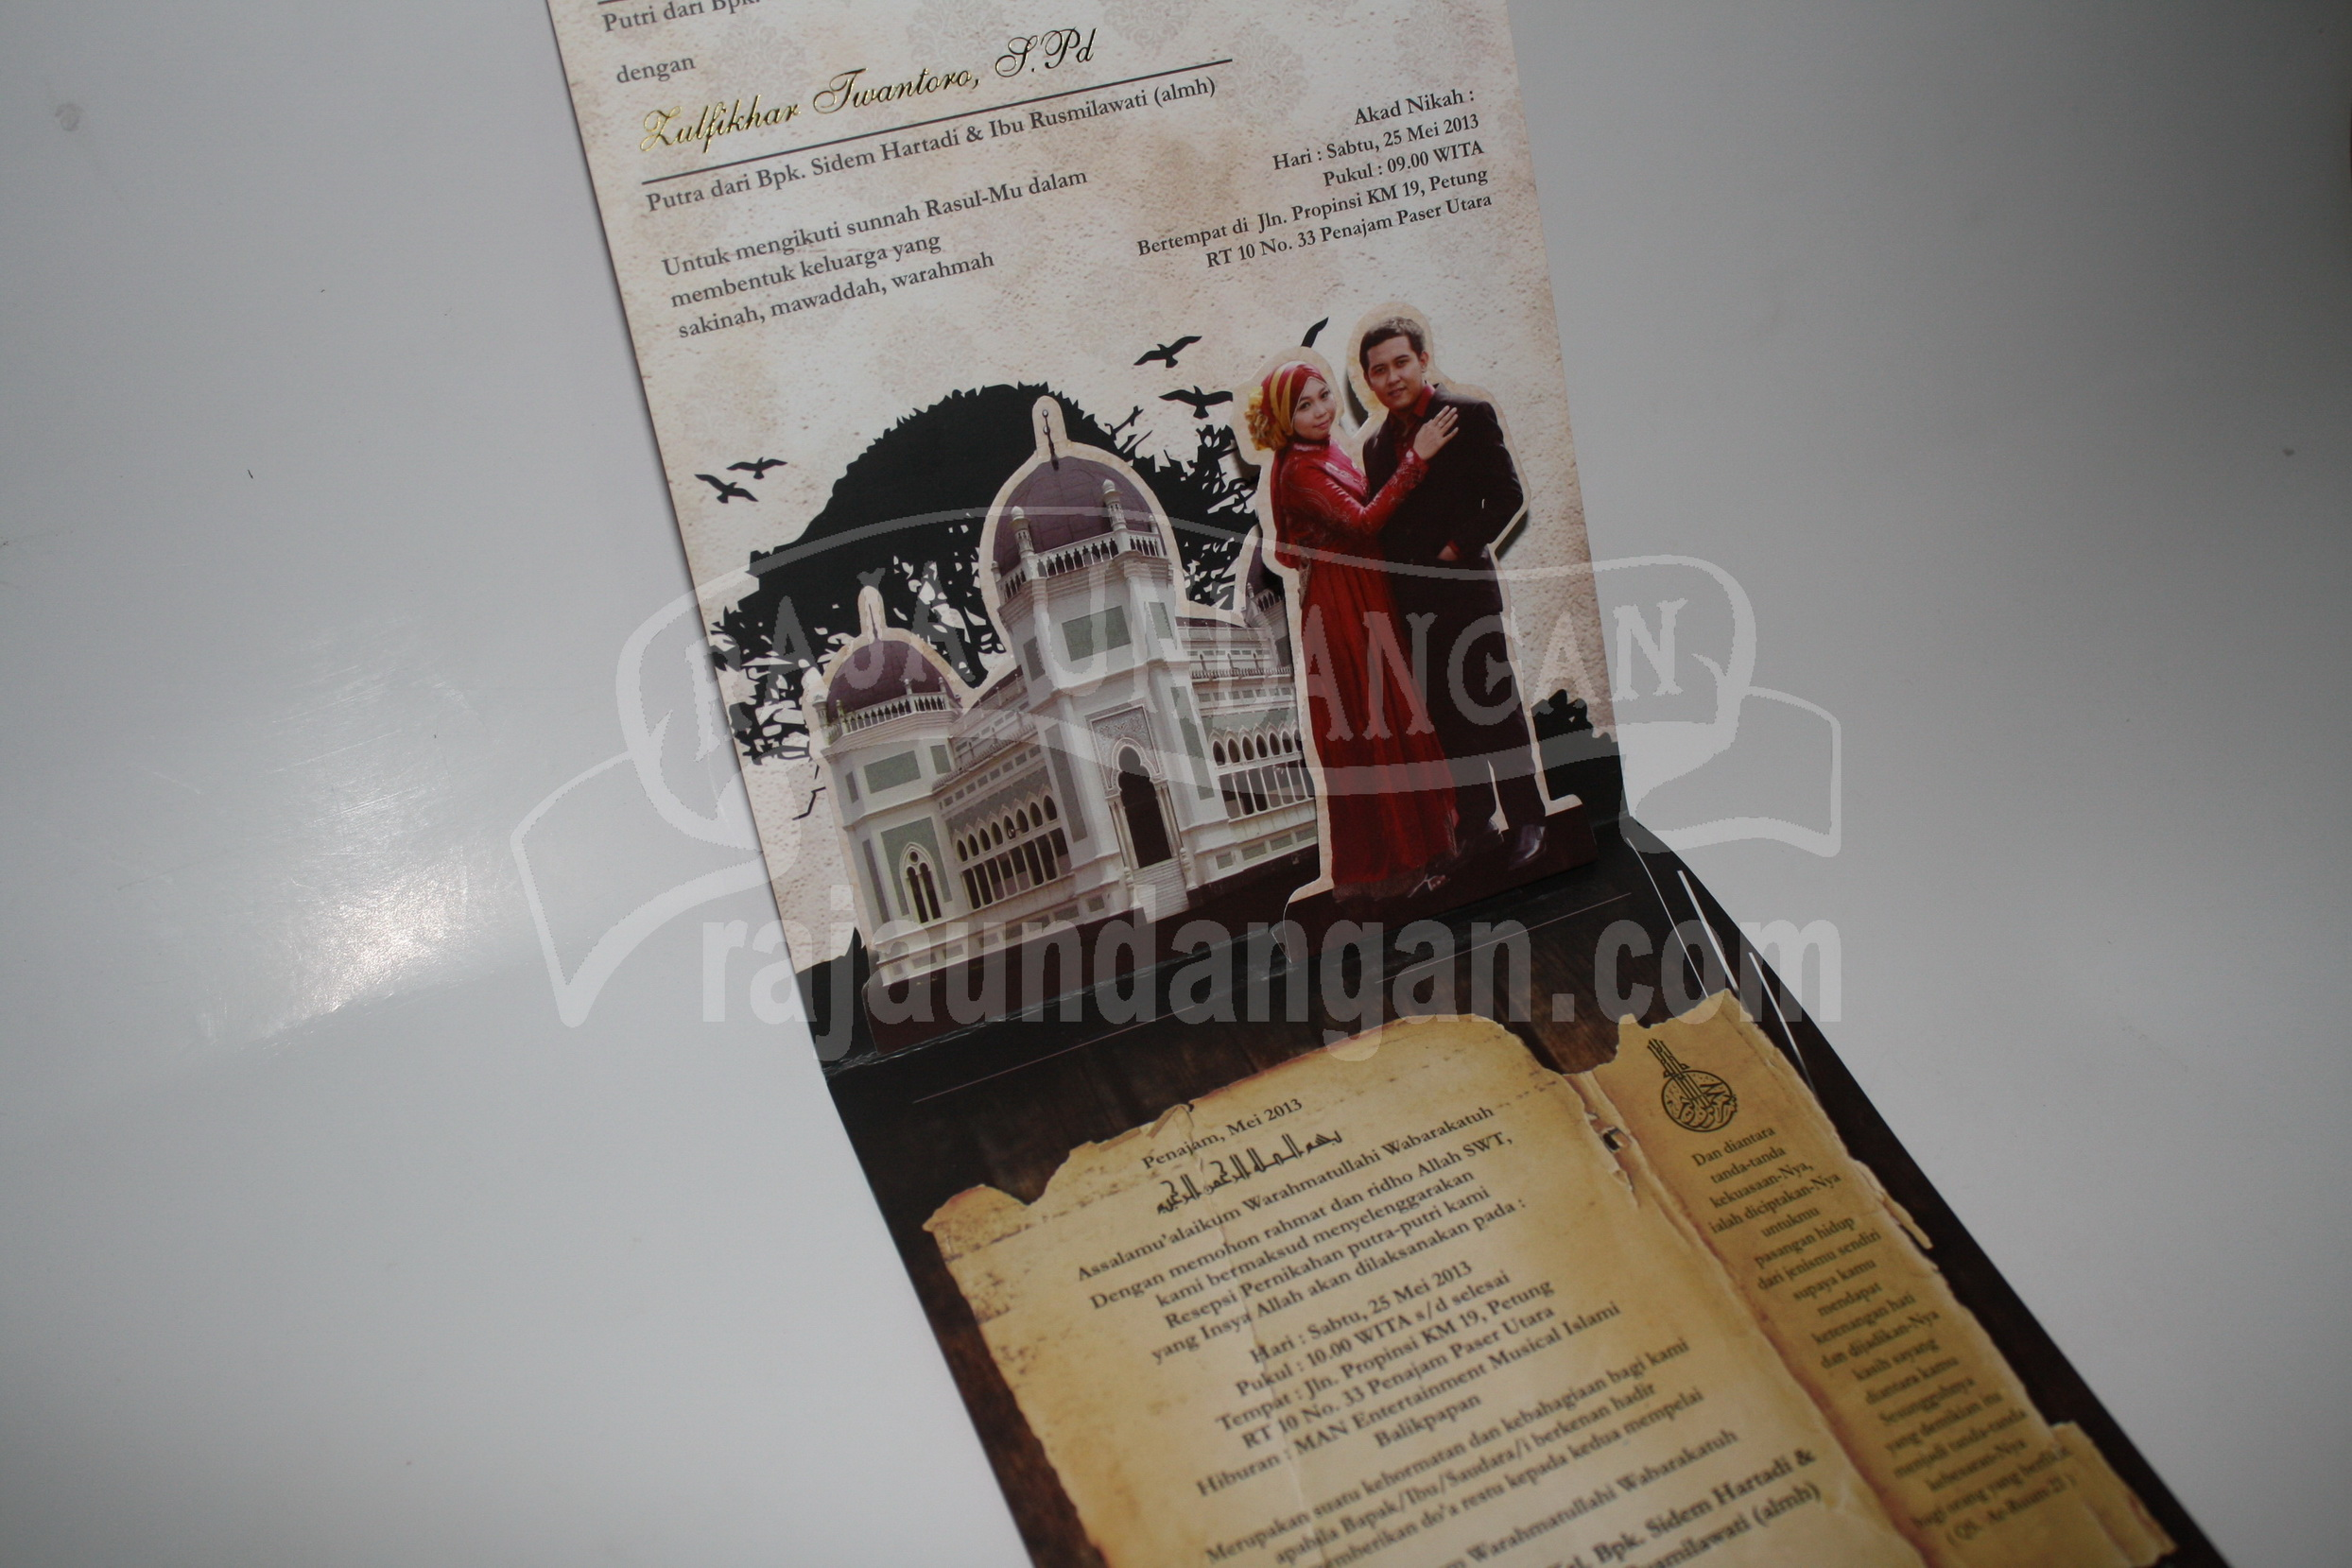 Undangan Unik Pop Up 3D Murah Dalam 2 - Percetakan Wedding Invitations Unik dan Eksklusif di Tandes